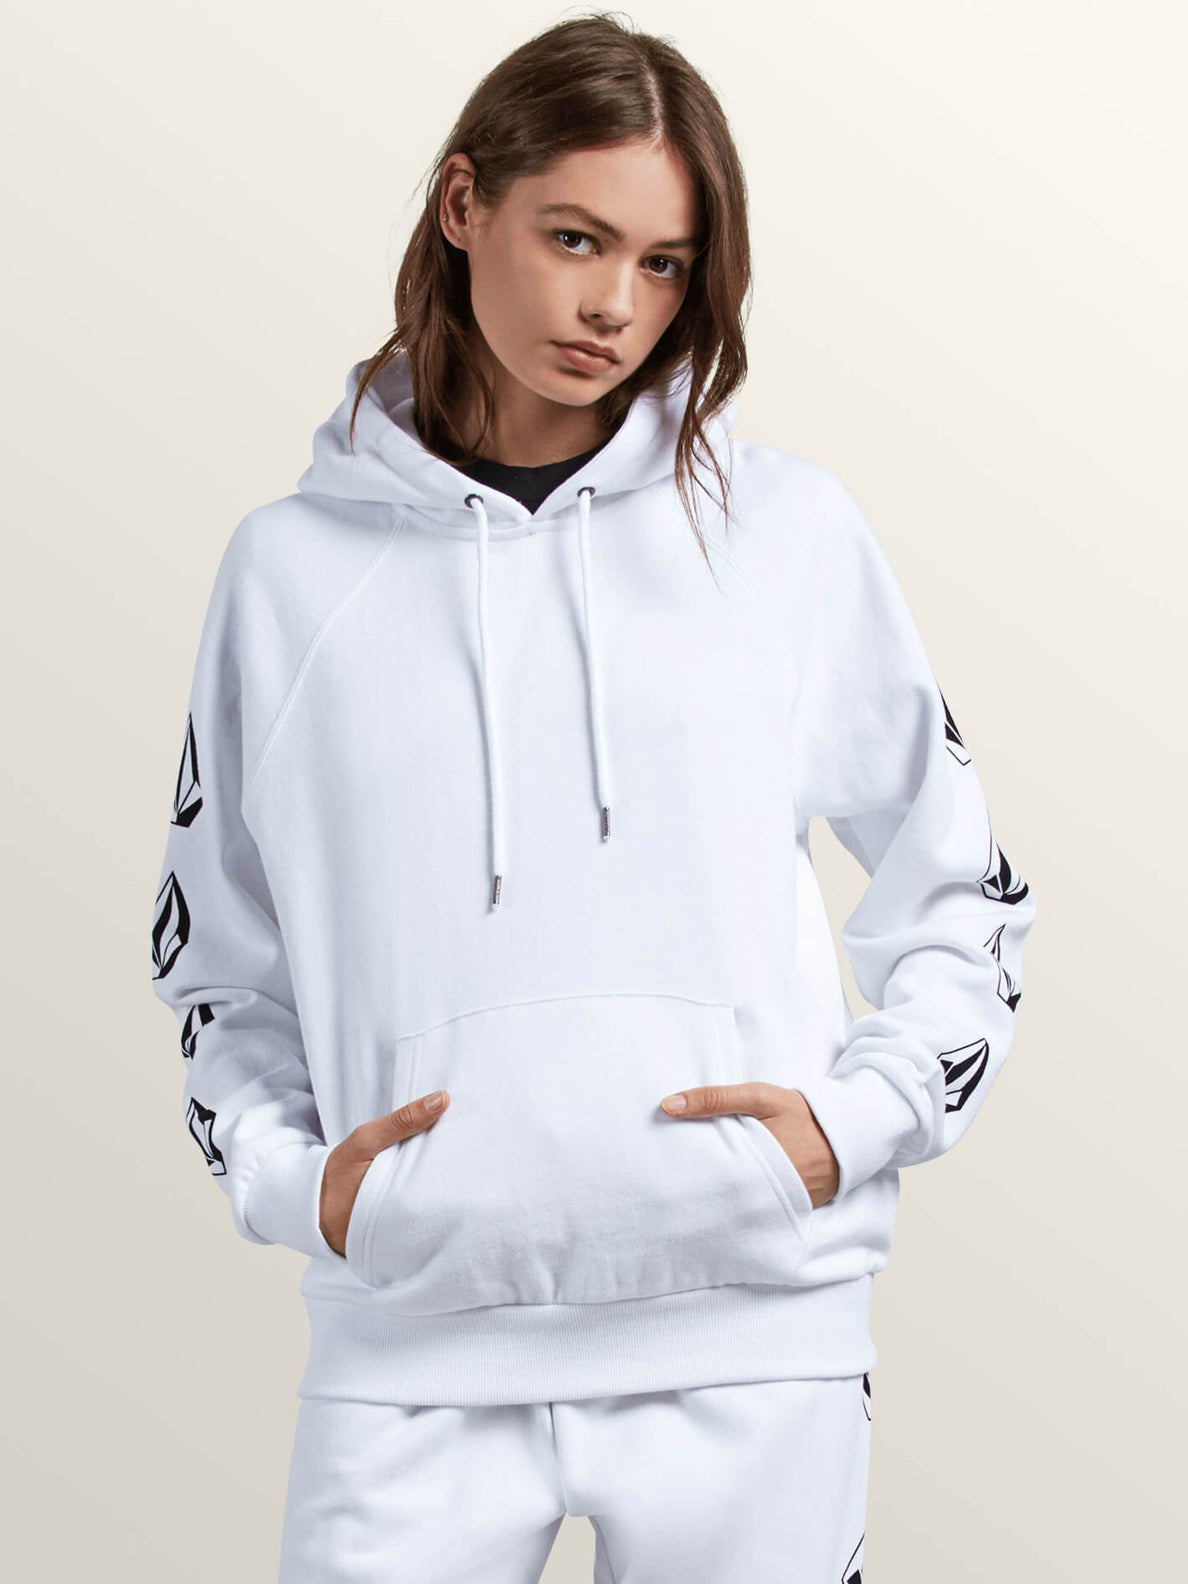 Gmj Hooded Fleece Sweatshirts - White